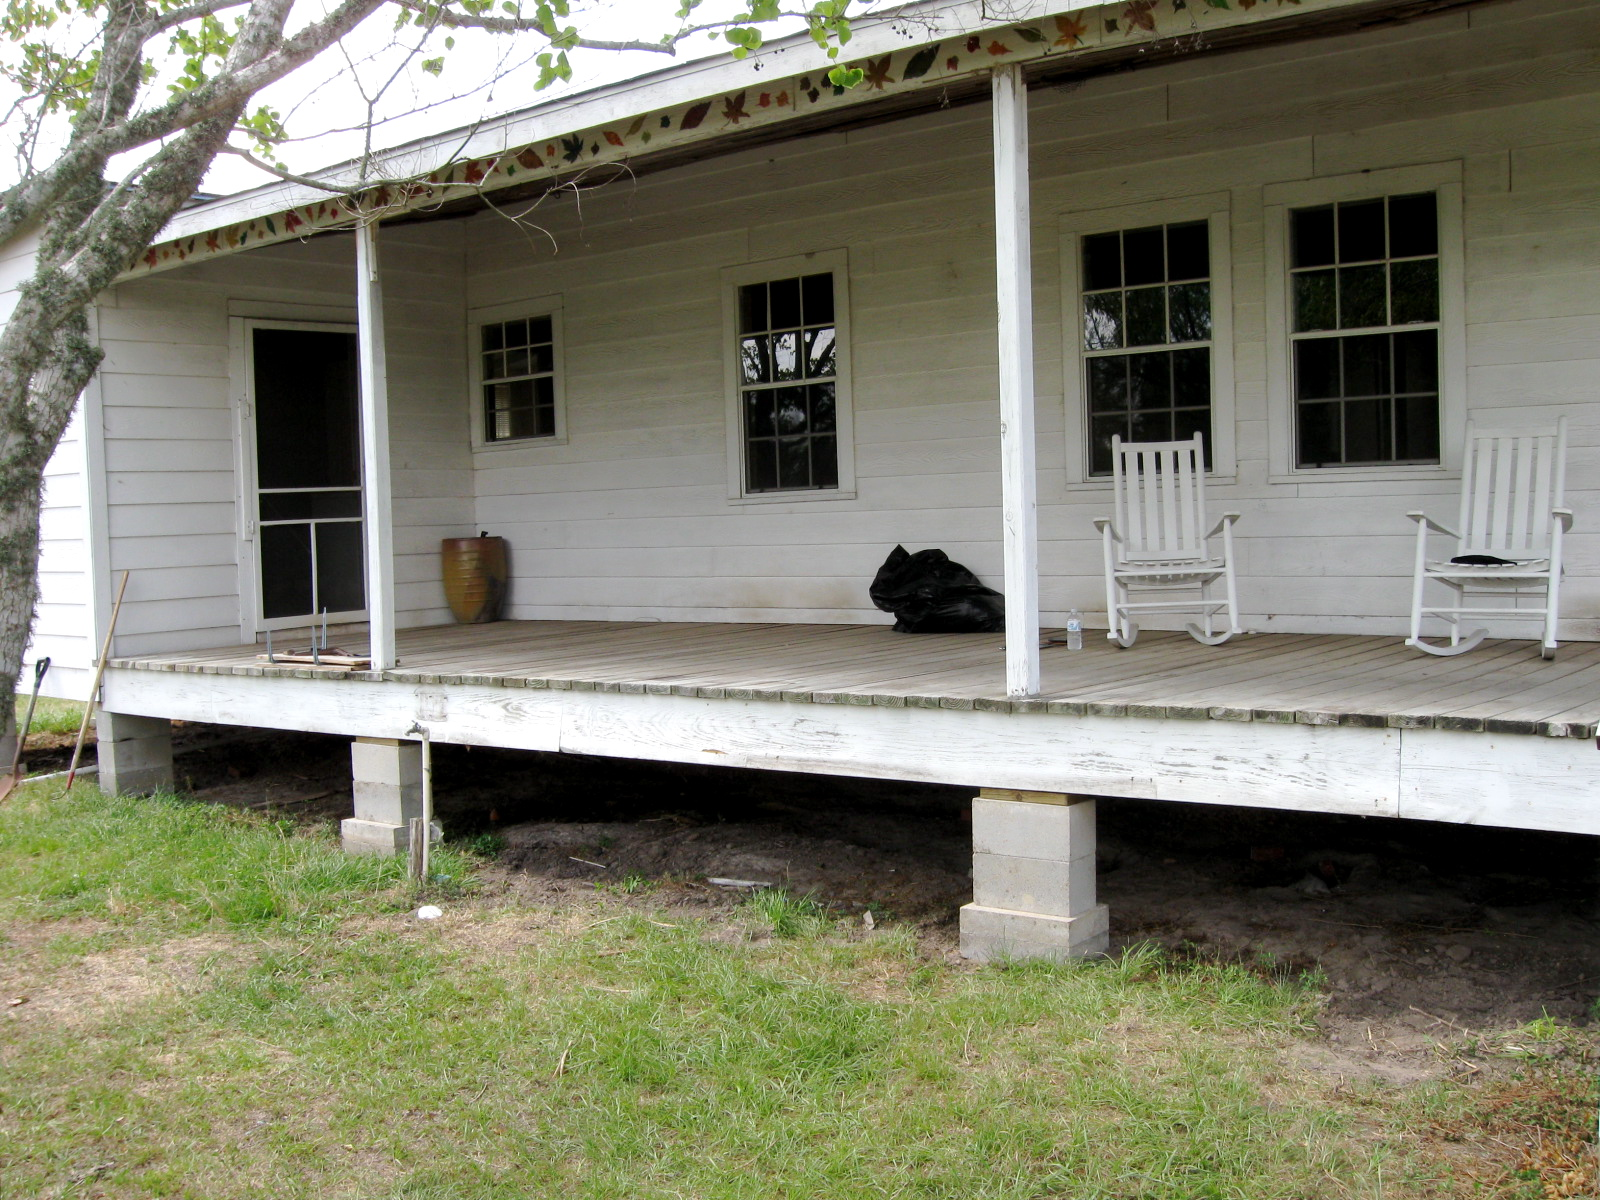 Here Is The Porch As It Was Before No Railing House Sits Up Pretty High So There Point In Not Having A Fall Off Wouldnt